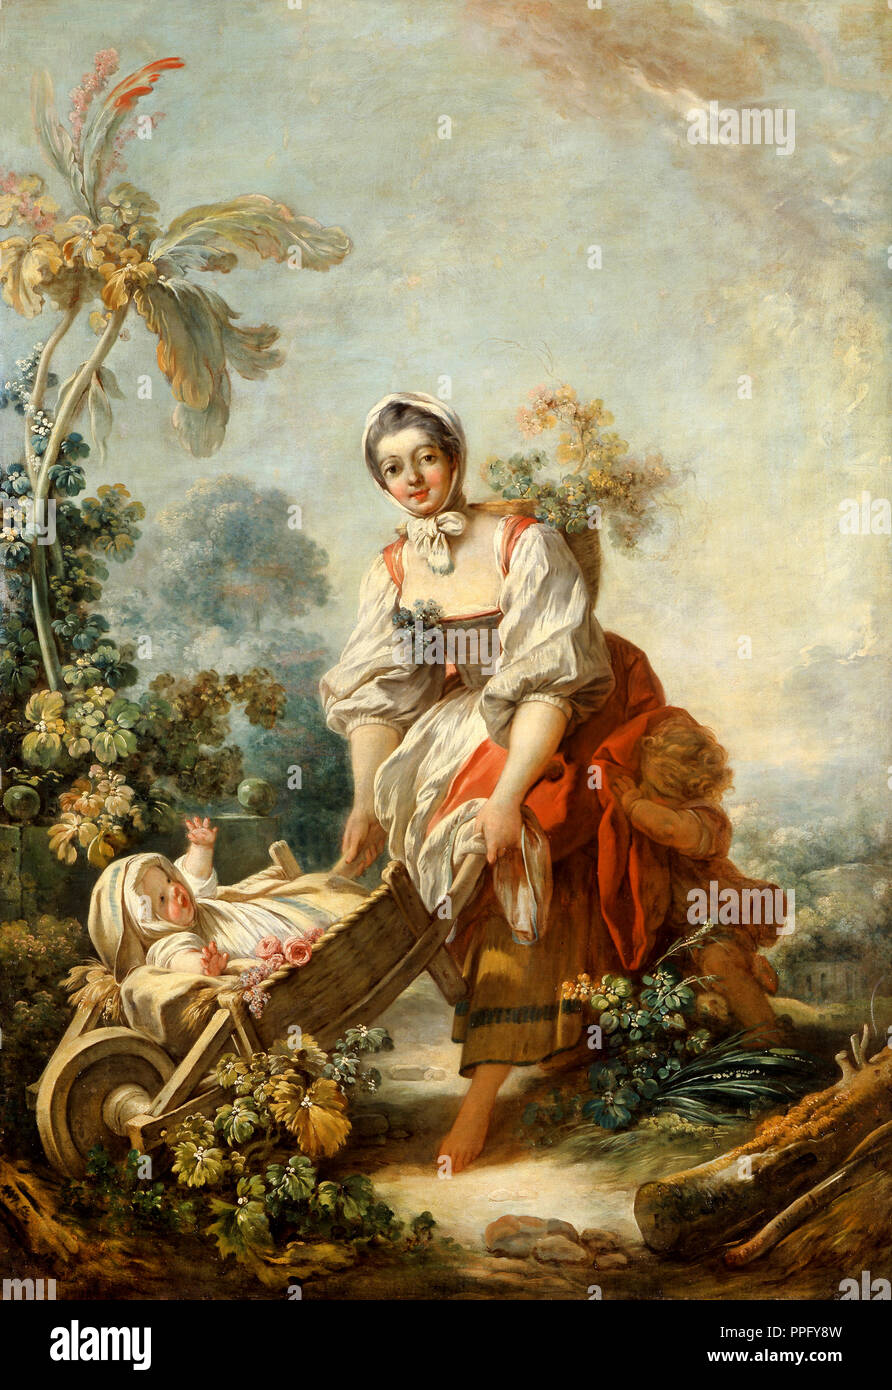 Jean-Honore Fragonard, The Joys of Motherhood. Circa 1752. Oil on canvas. Indianapolis Museum of Art, USA.s - Stock Image